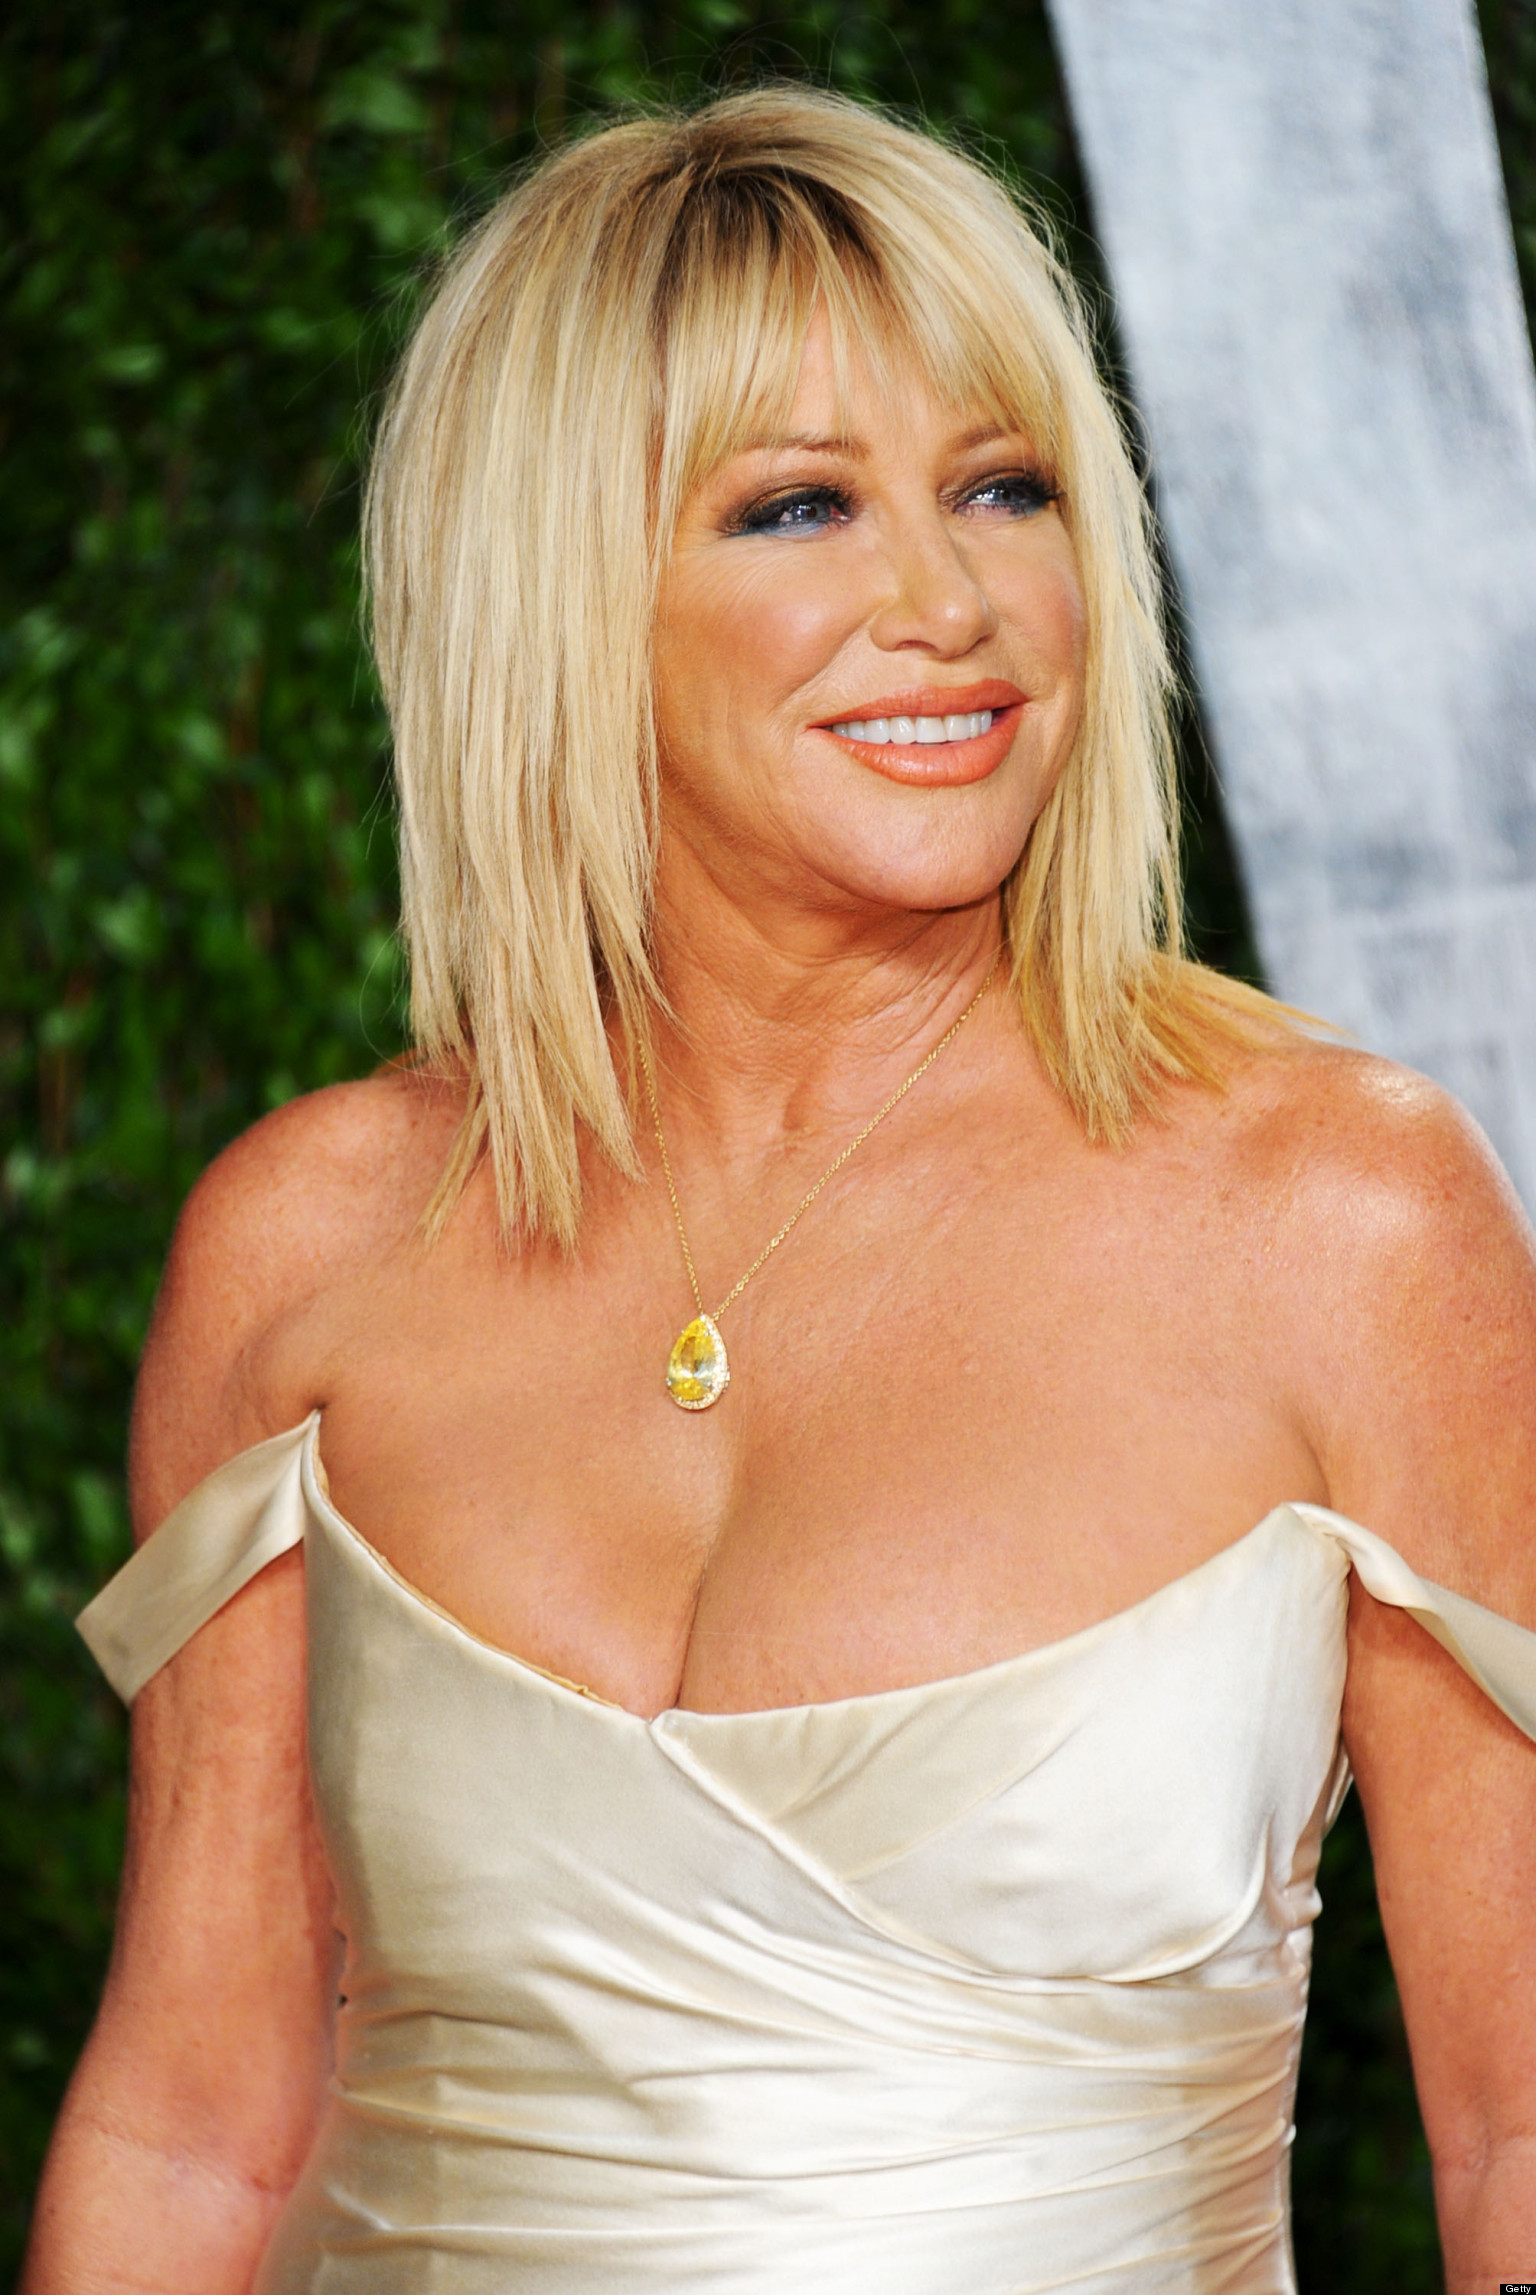 Suzanne Somers On 'Real Housewives Of Beverly Hills': 'I